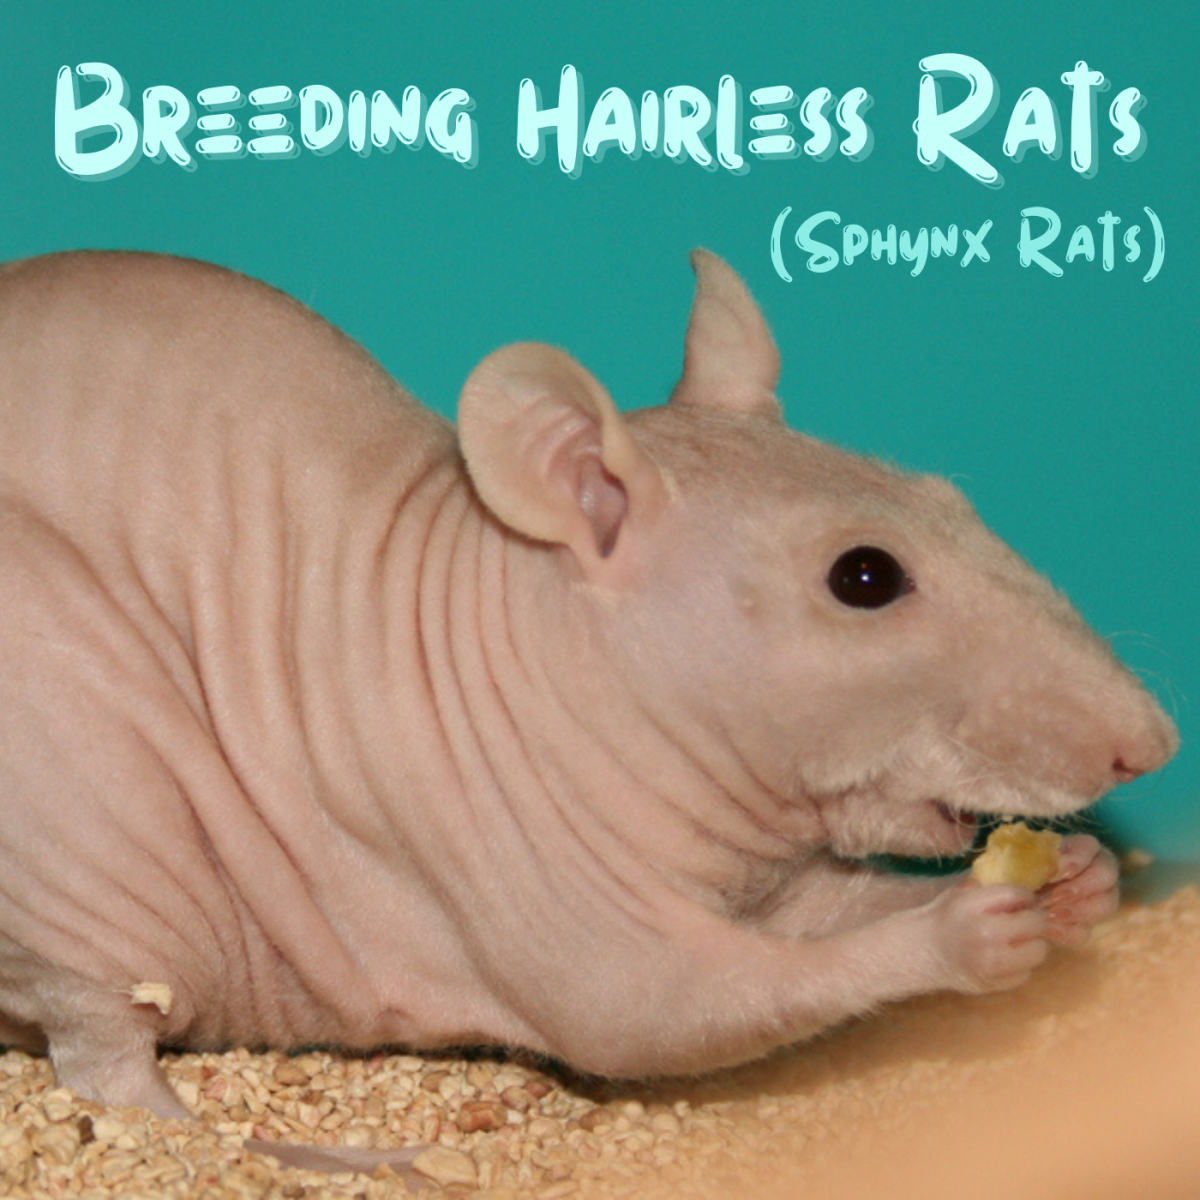 How to Breed Healthy Hairless Rats (Sphynx Rats)